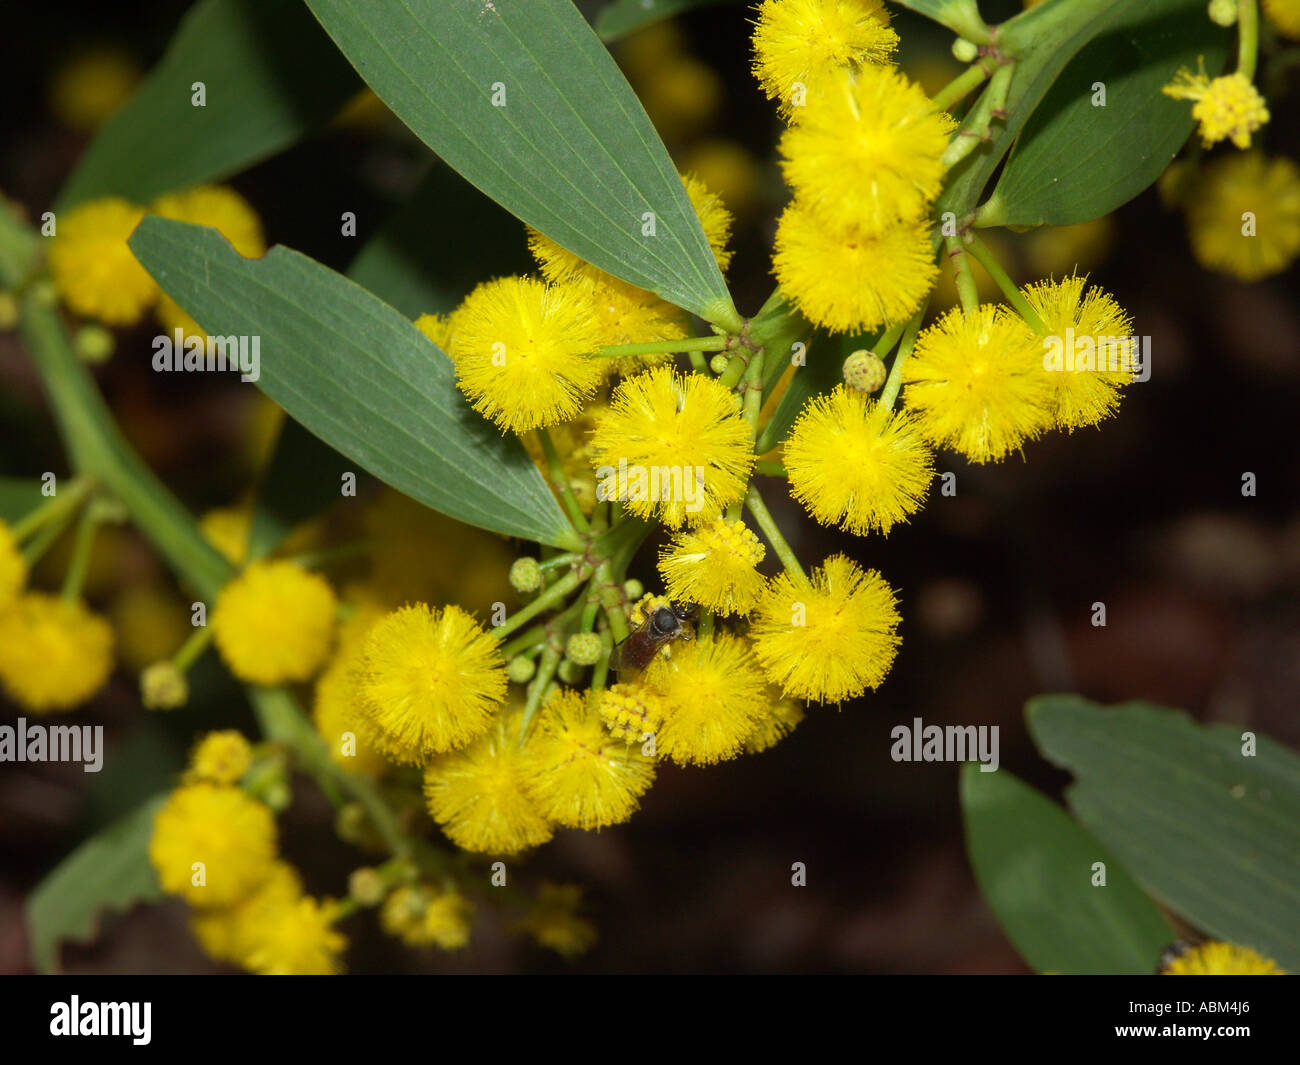 Cluster of vivid yellow flowers and bright green leaves of Australian acacia / wattle species - Stock Image